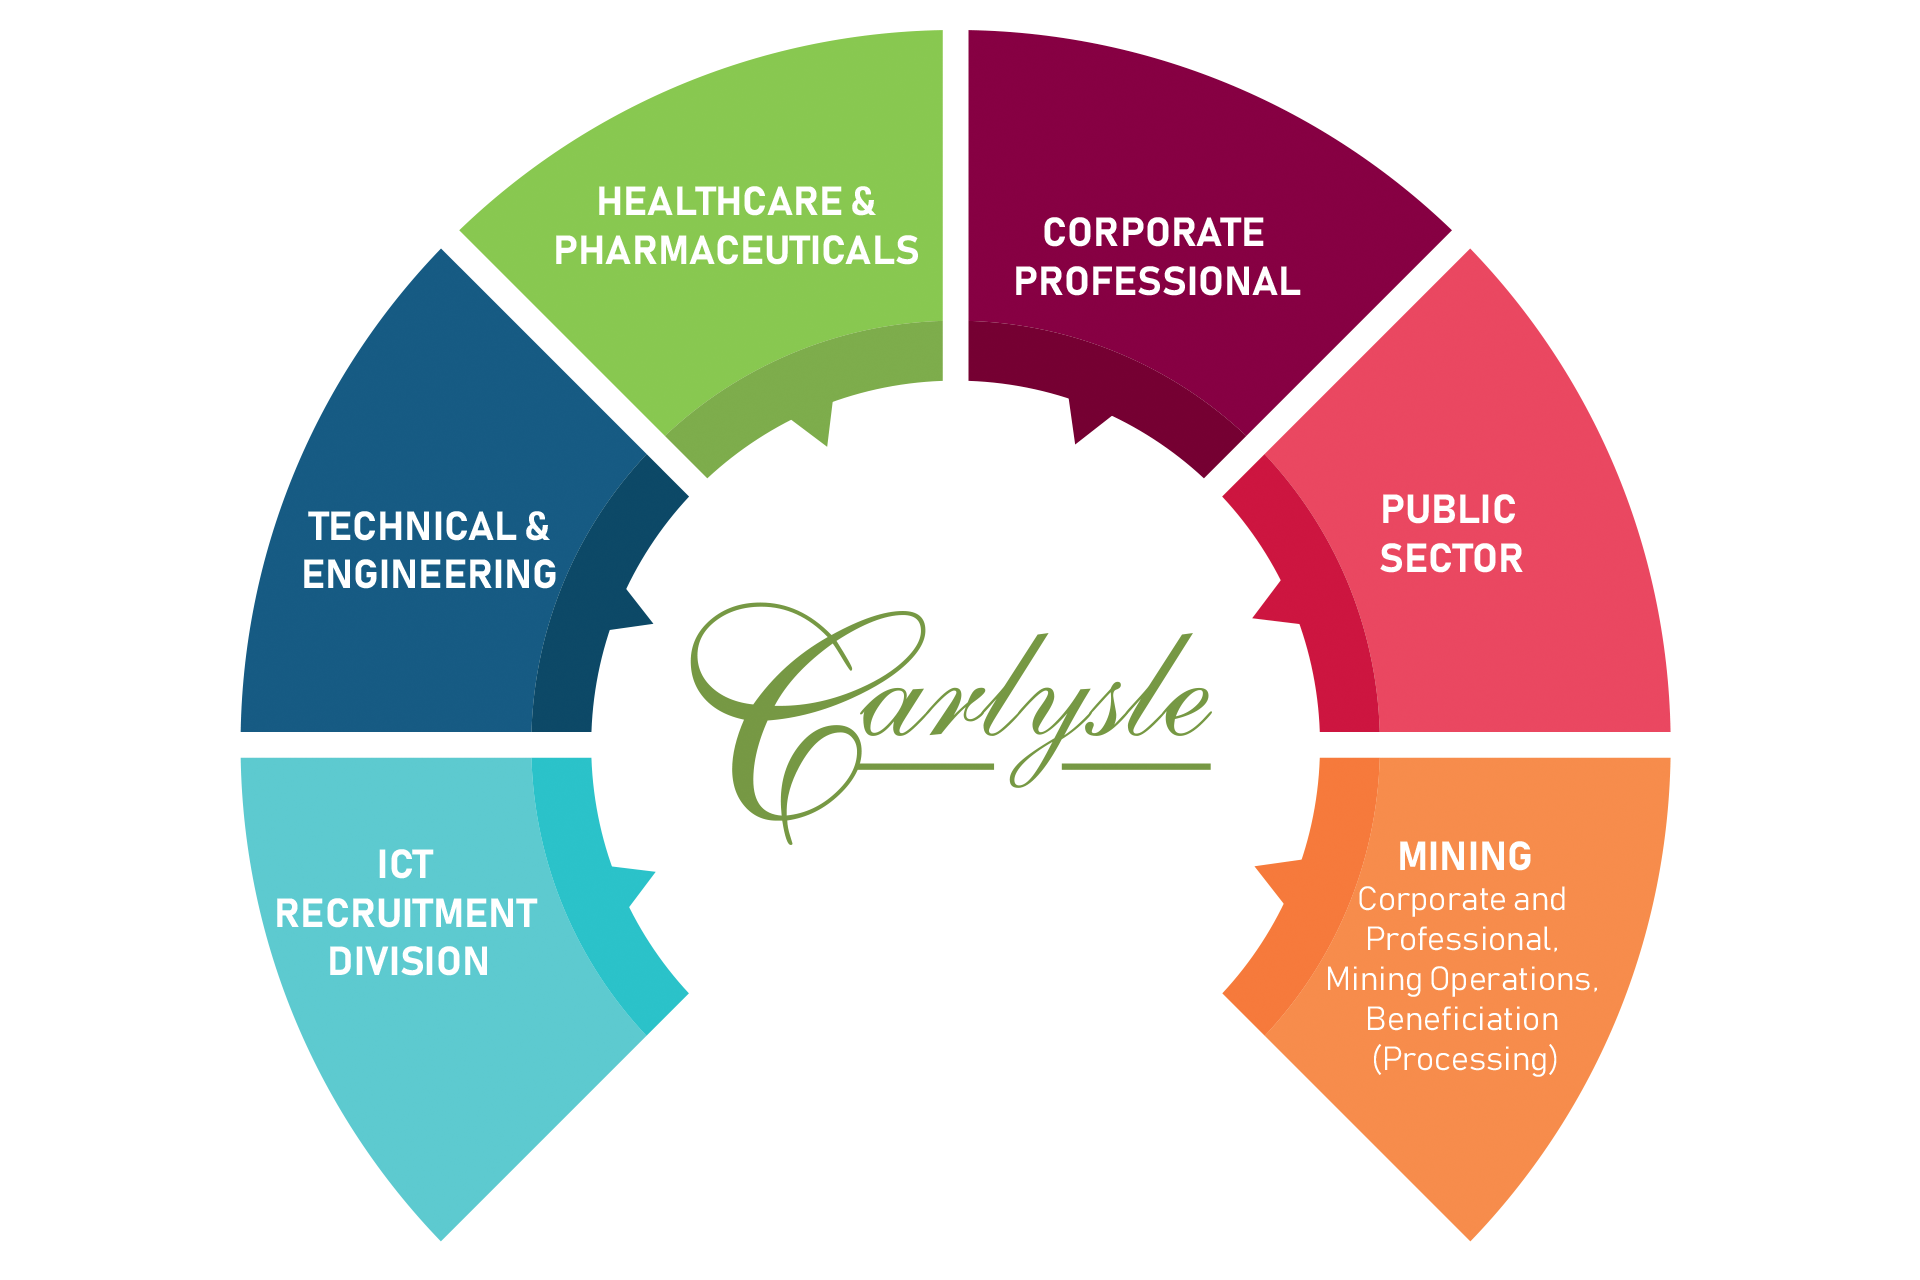 divisions carlysle human capital consulting-services-head-hunters-job-seekers-employment-staff-staffing-solutions-kzn-south-africa-divisions